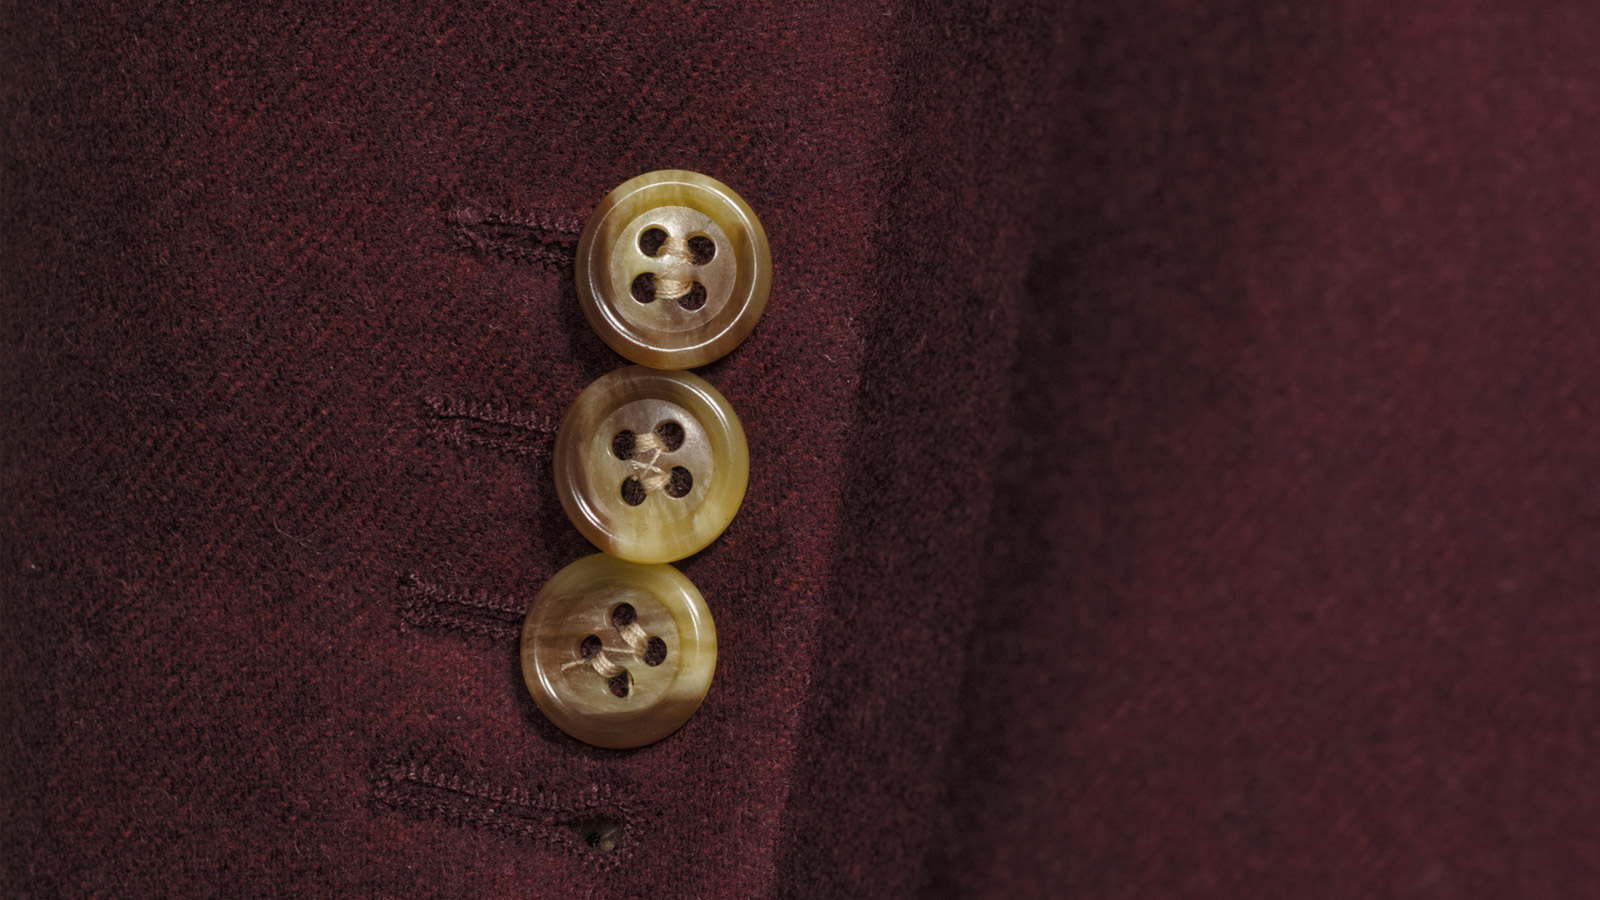 Burgundy Wool Flannel Suit - slider image 1